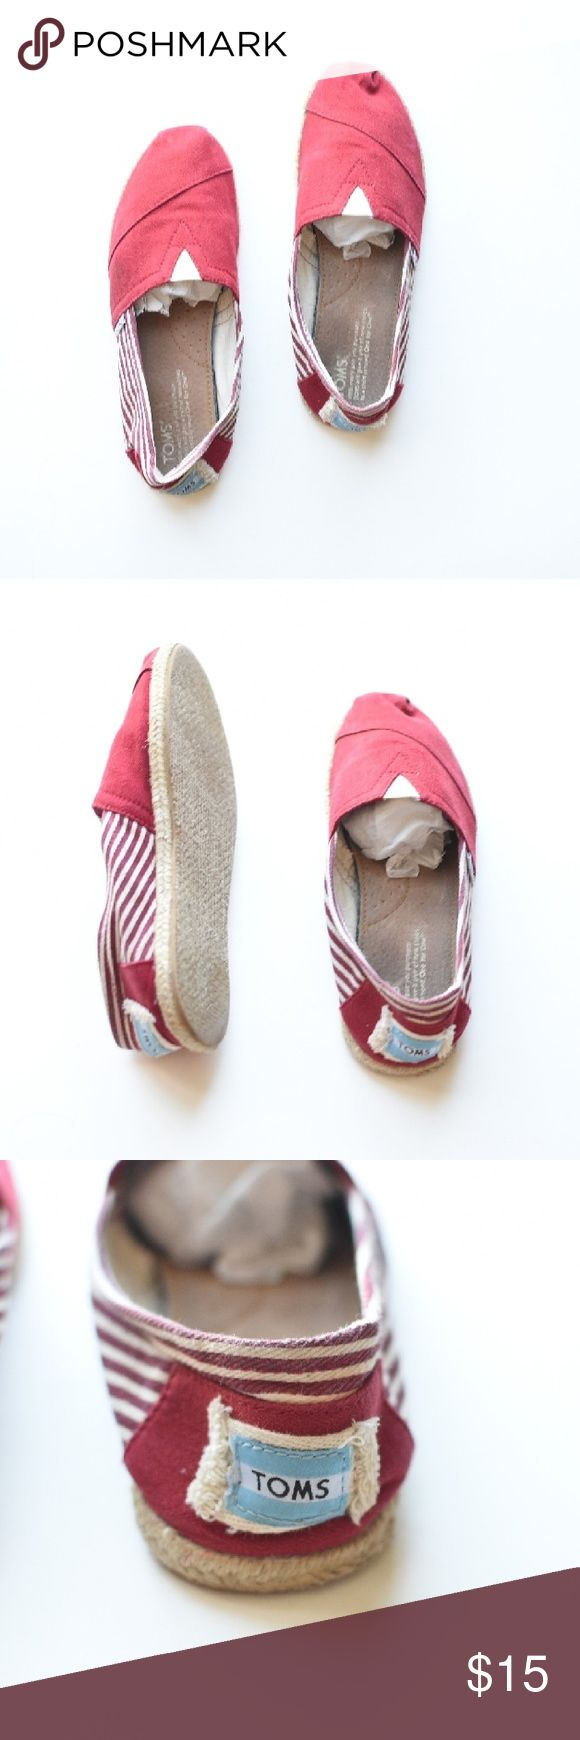 TOMS Classic Red Comfy TOMS!  In very good condition. Minor signs of wear present. TOMS Shoes Flats & Loafers